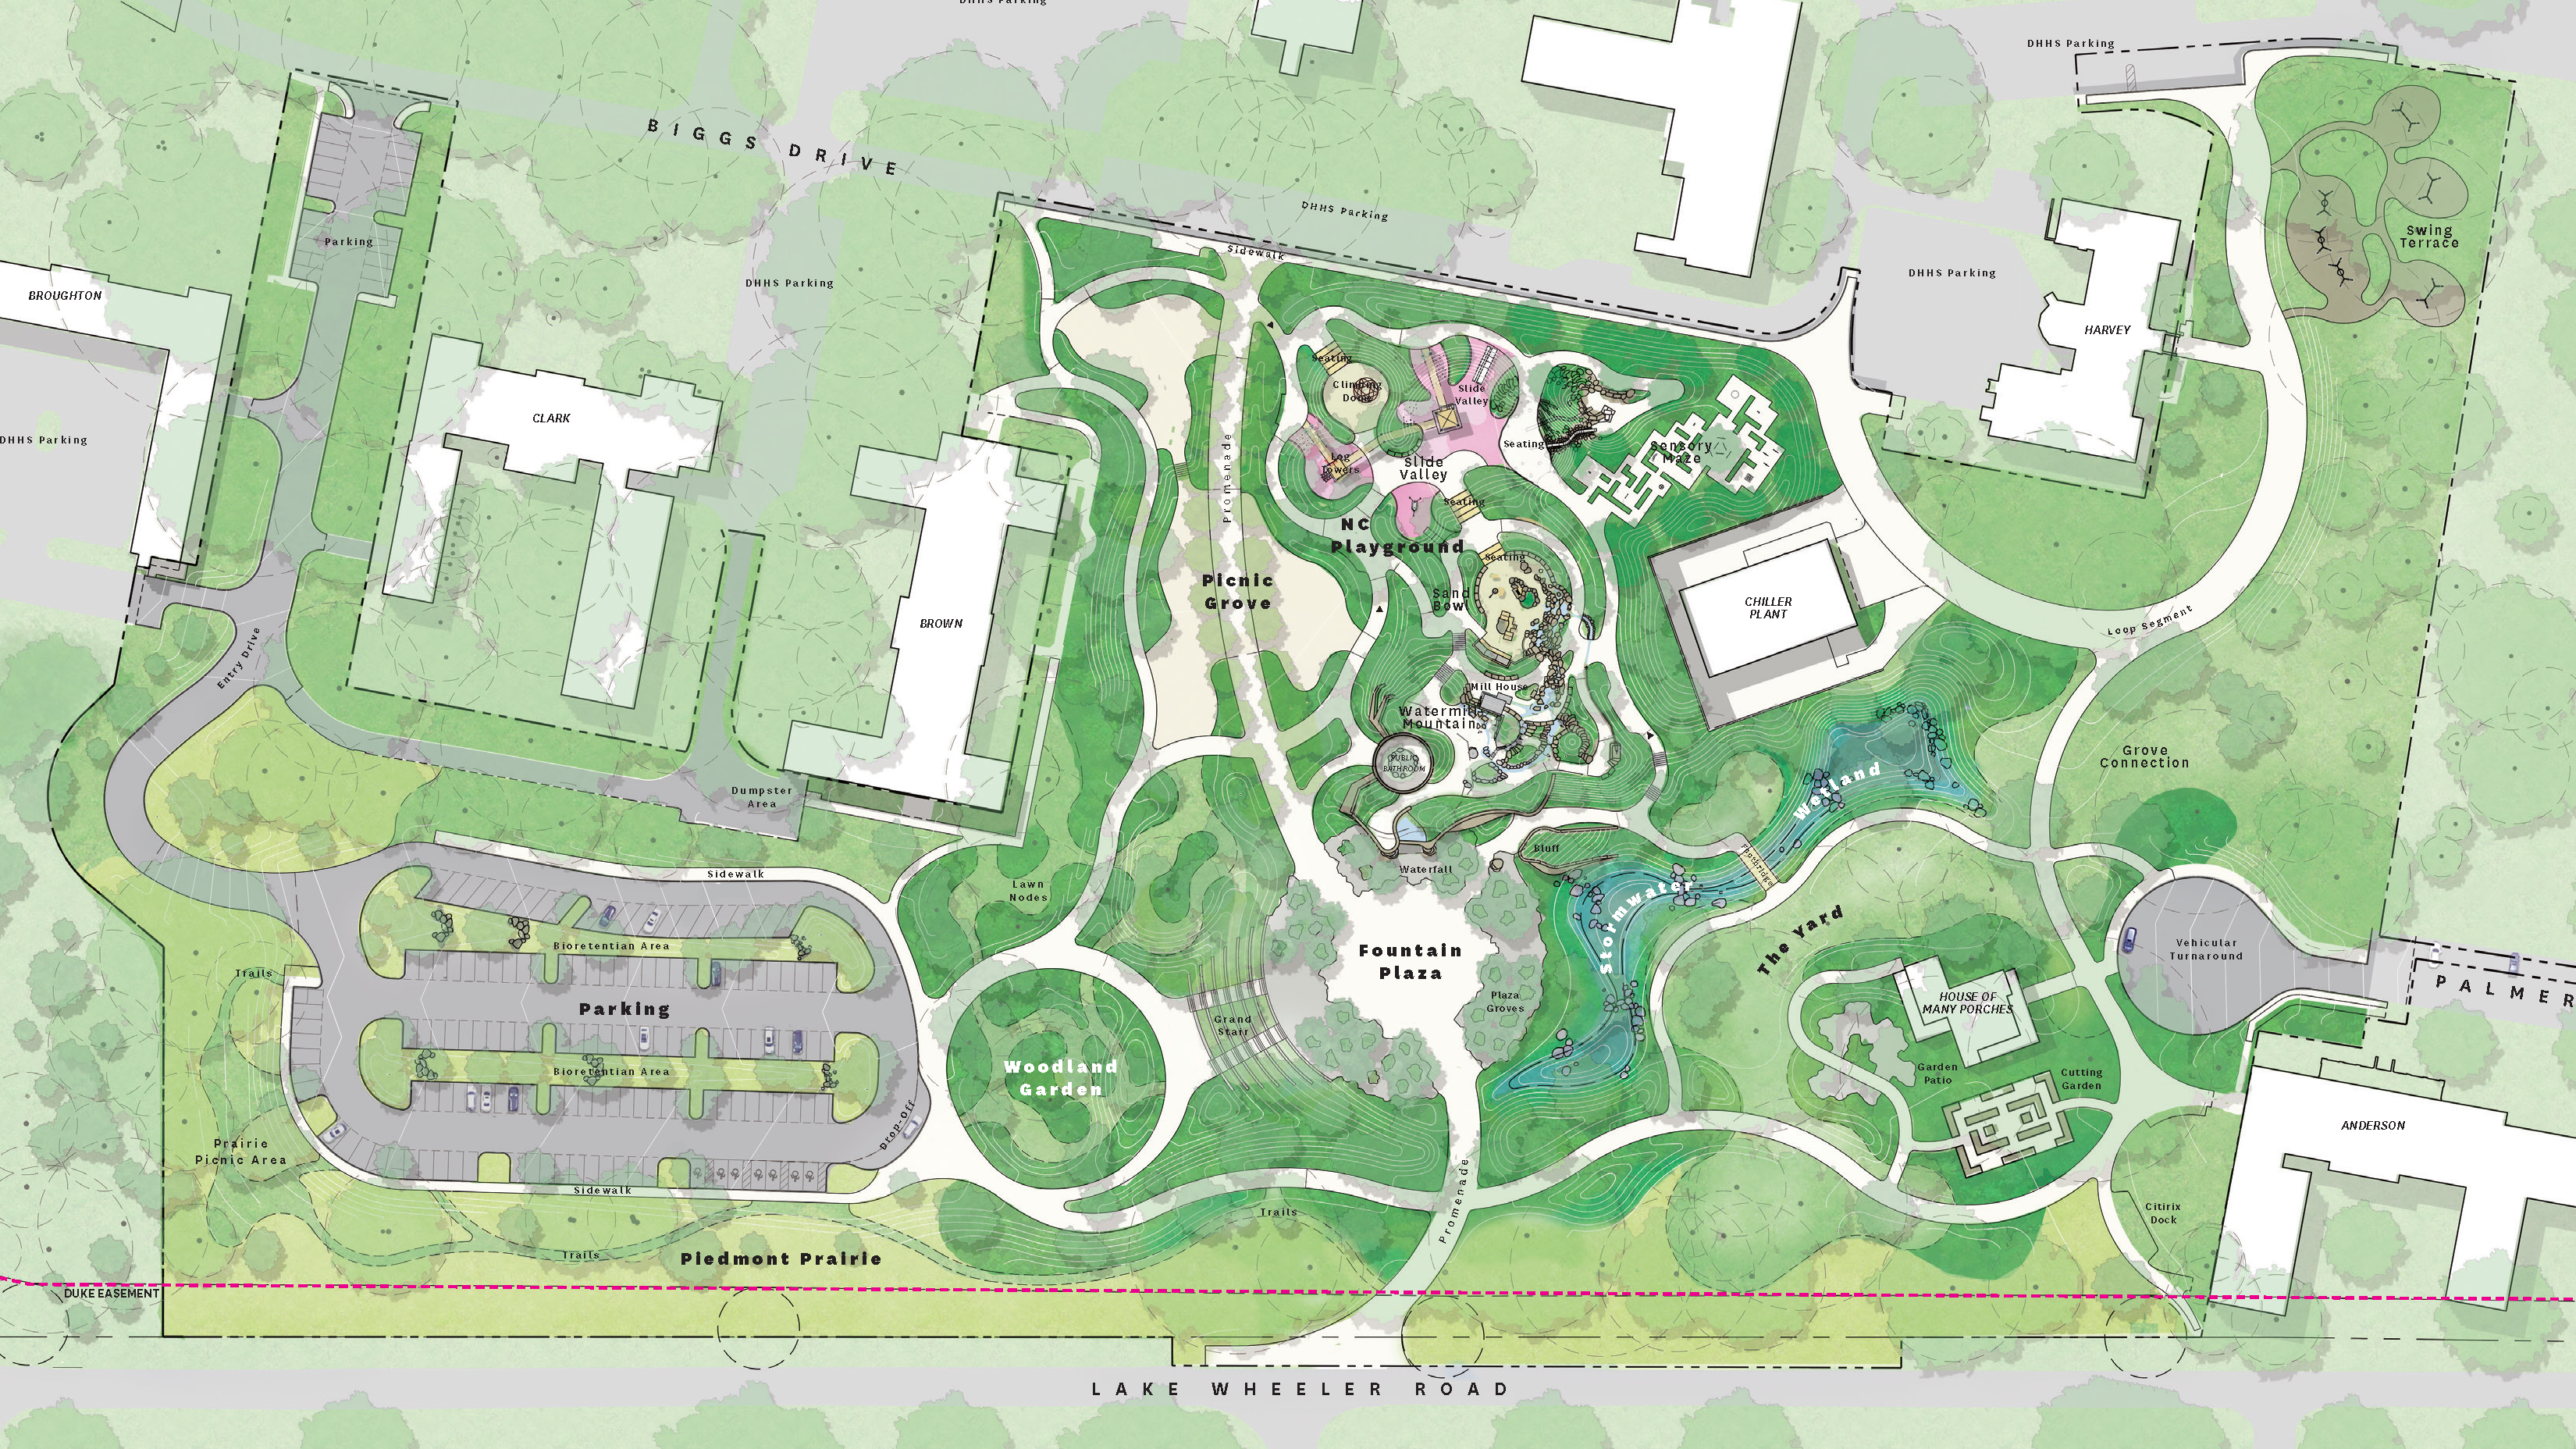 Plaza & Play graphic site plan June 2021